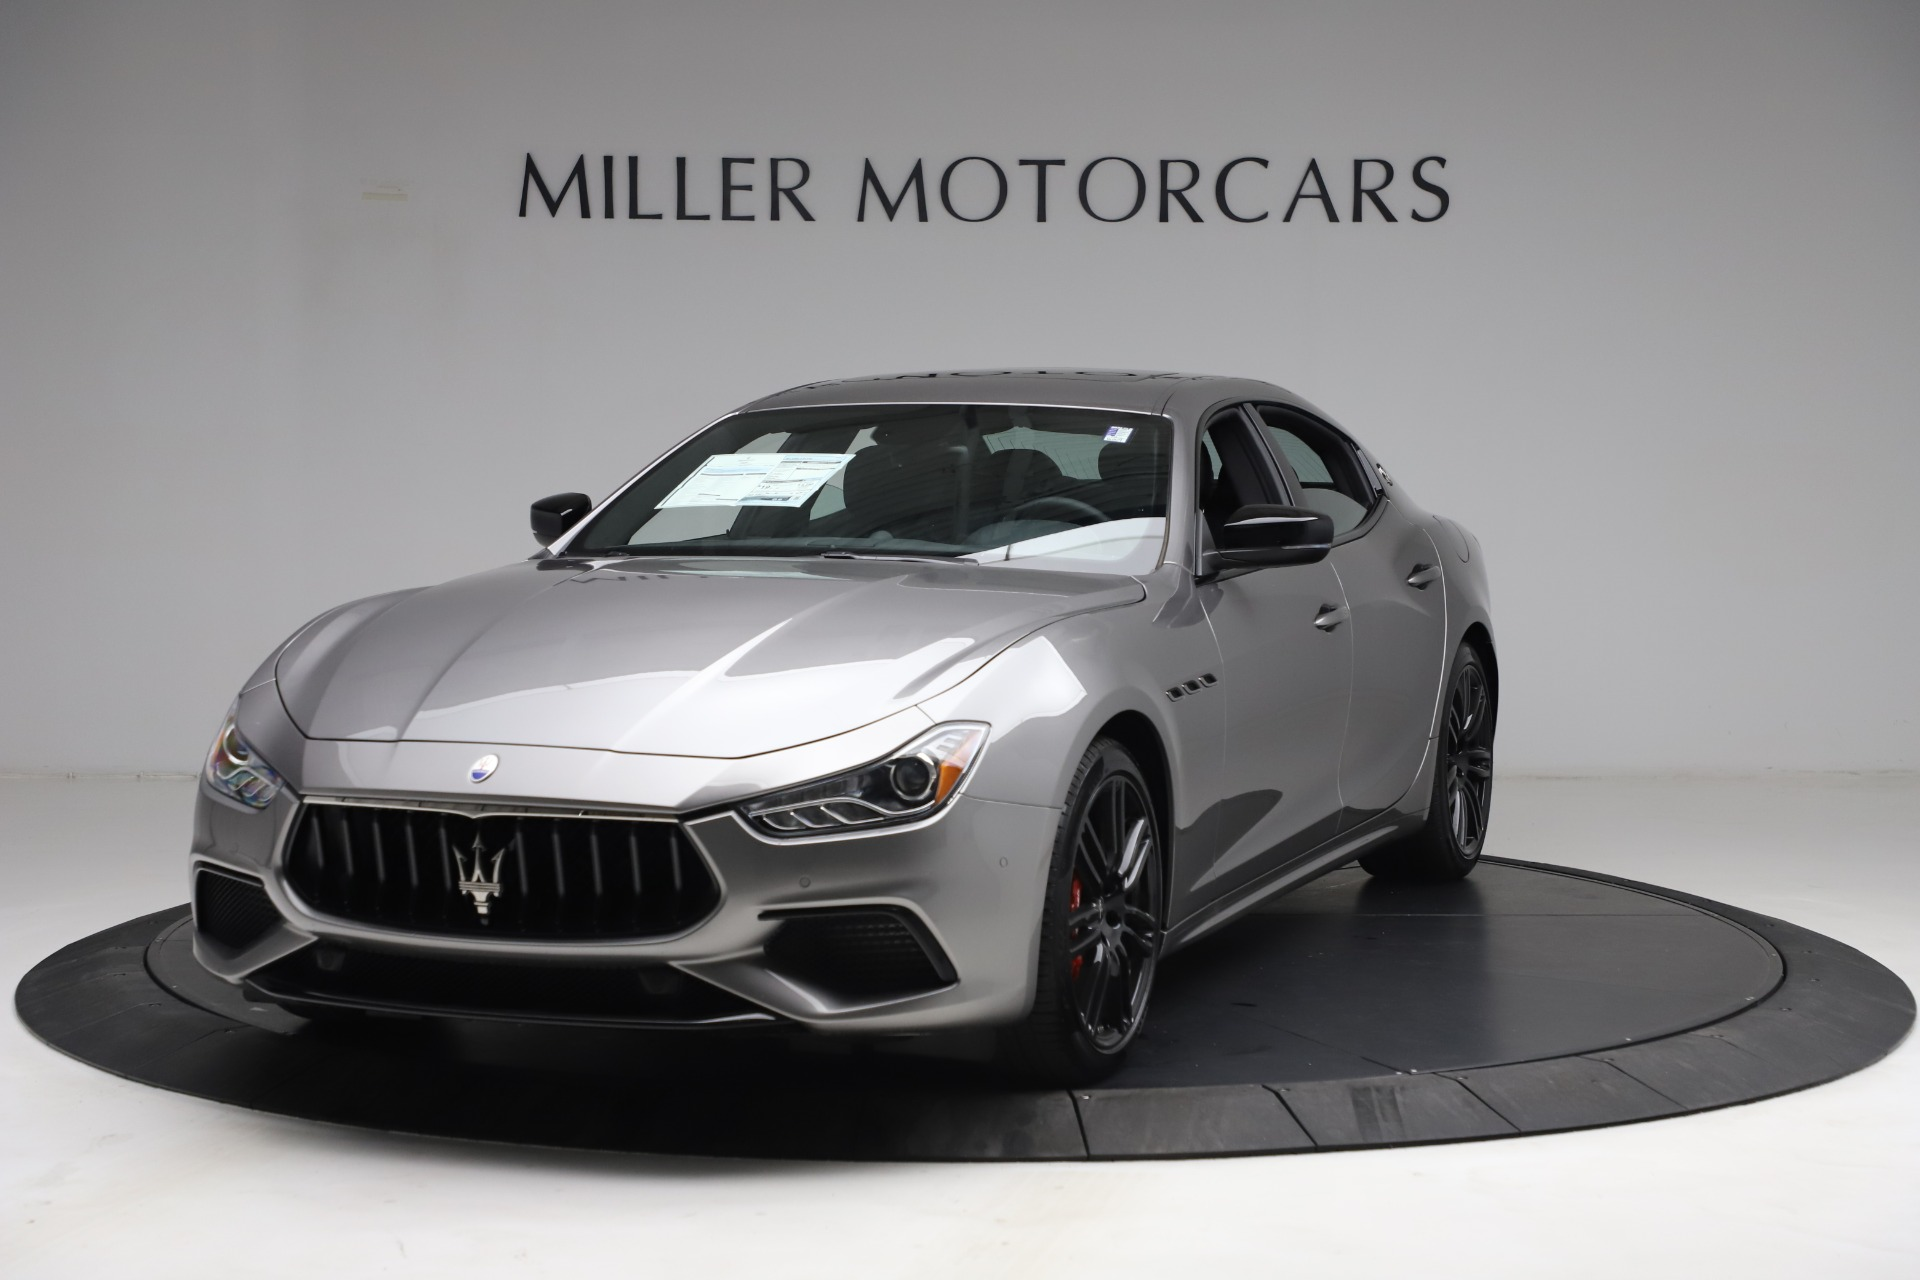 New 2021 Maserati Ghibli S Q4 for sale Call for price at Rolls-Royce Motor Cars Greenwich in Greenwich CT 06830 1